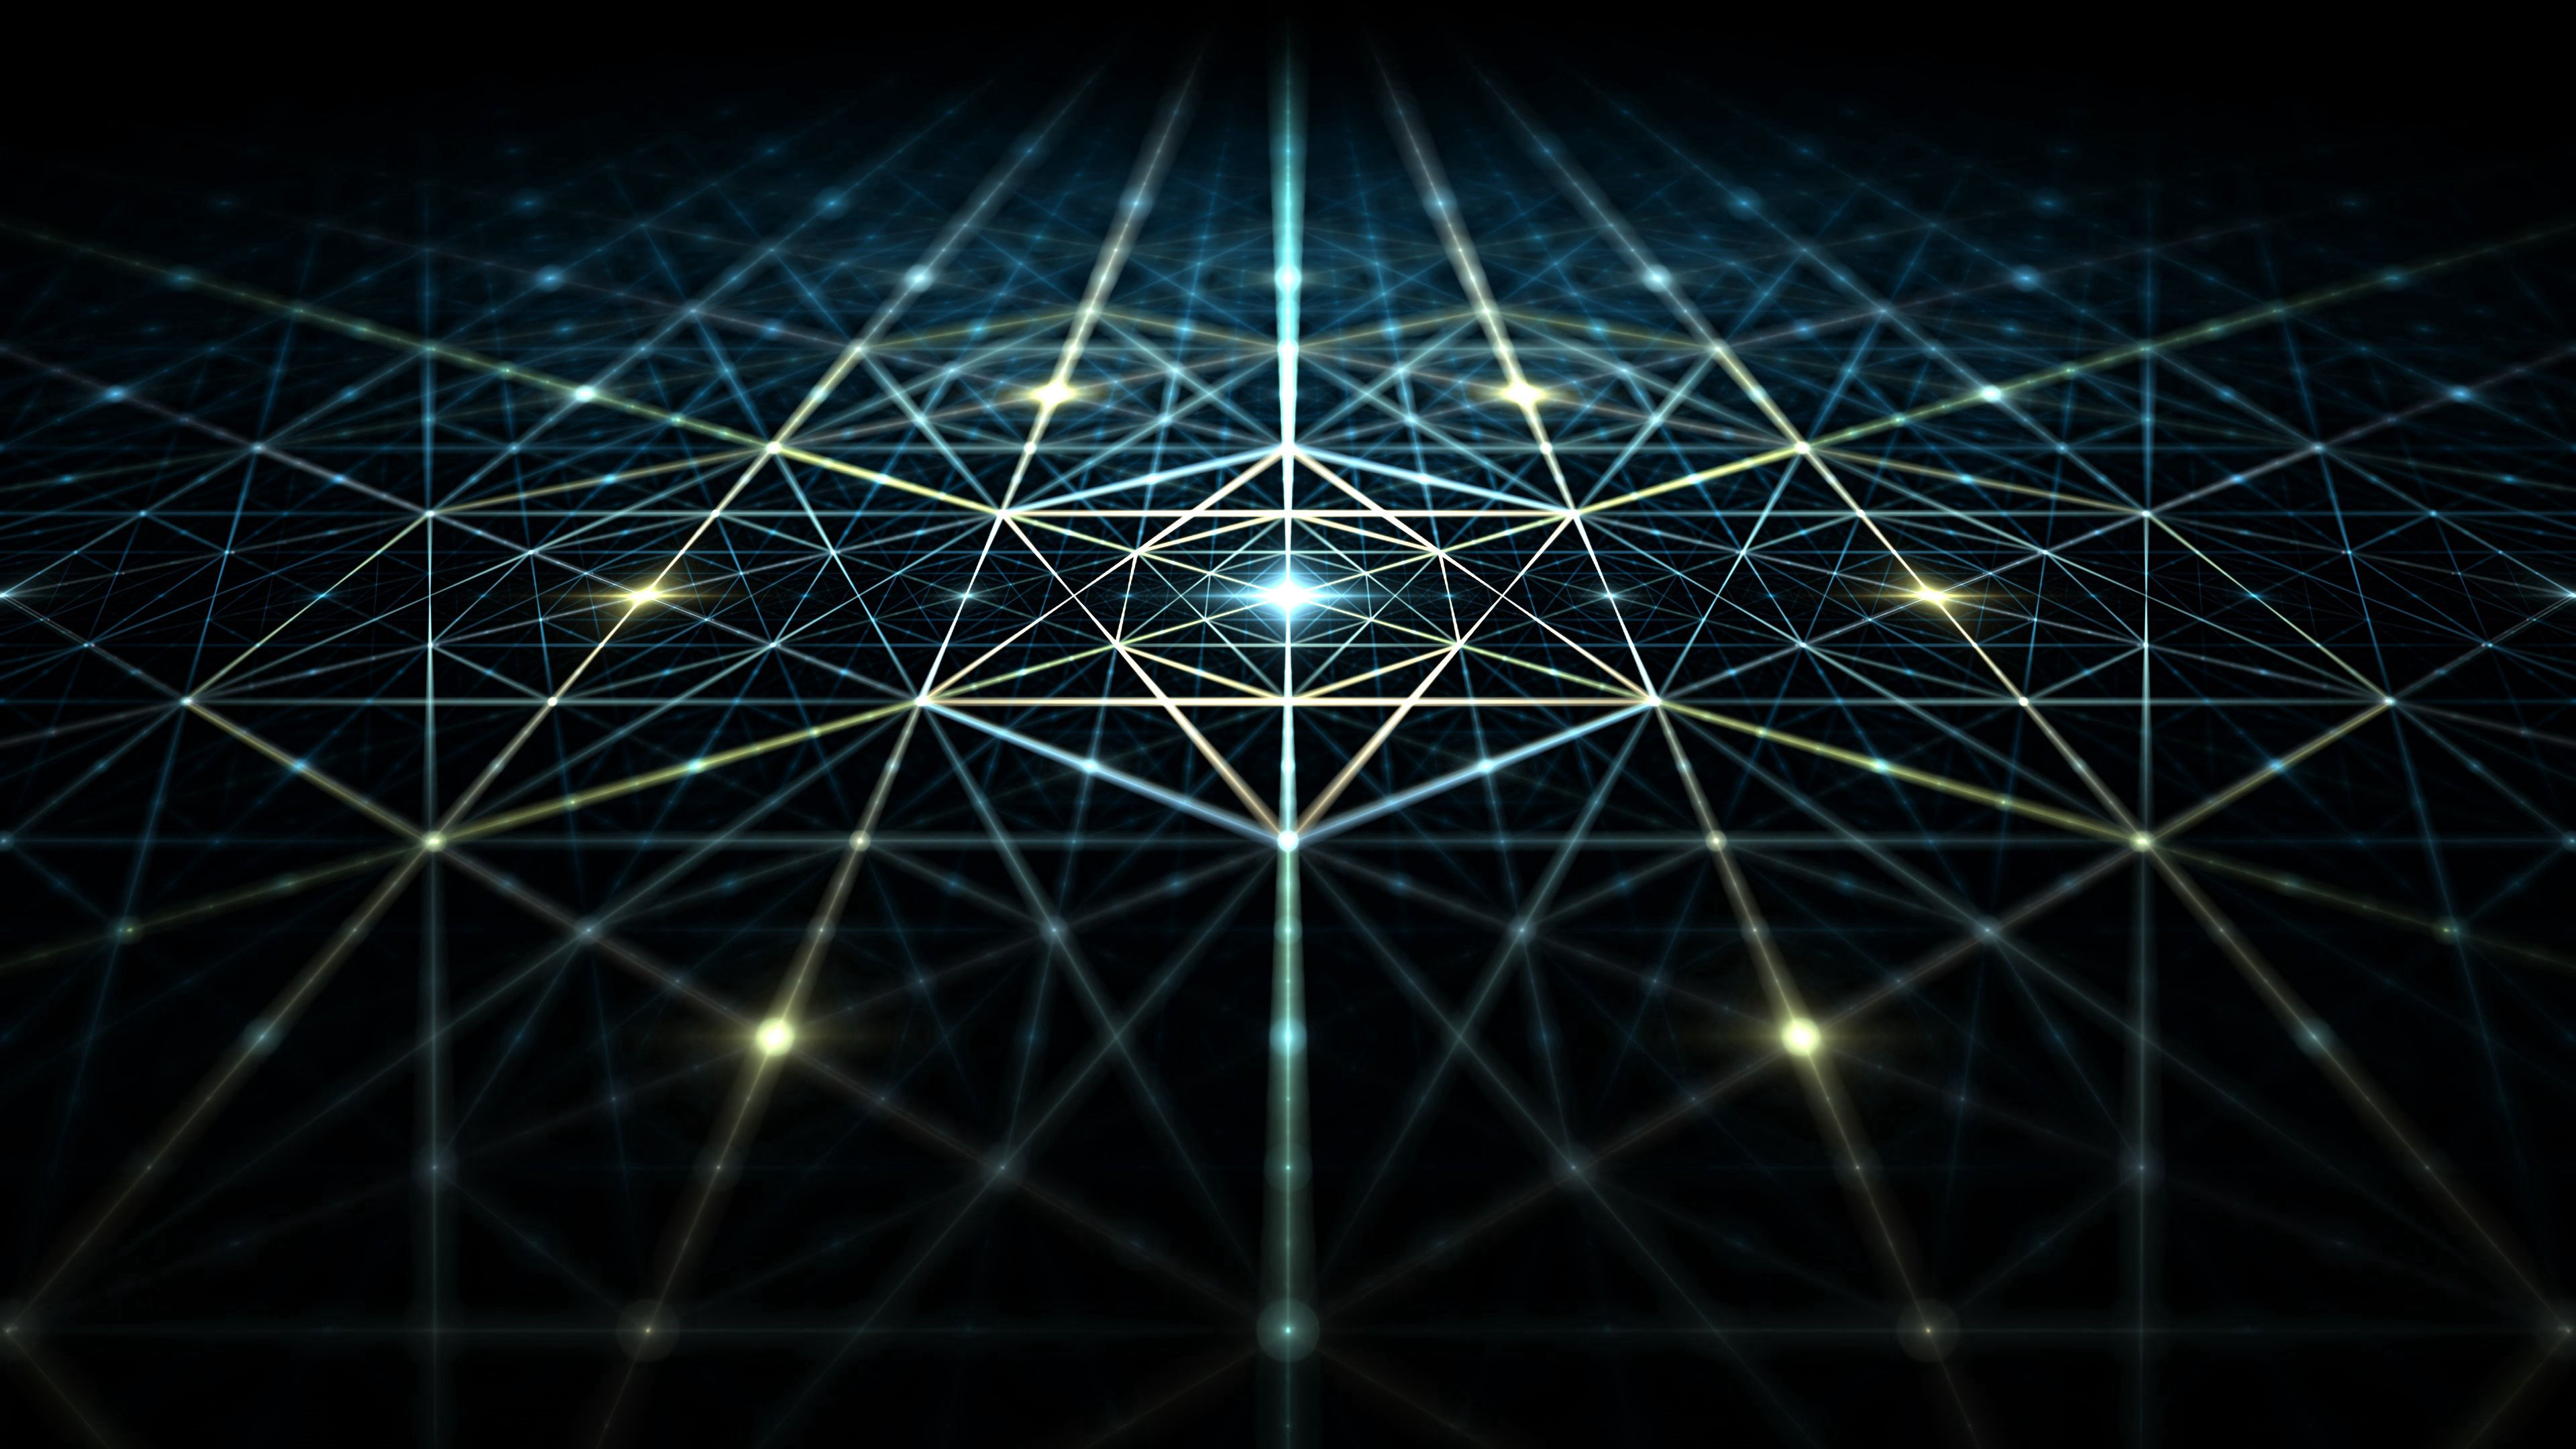 153807 download wallpaper Abstract, Lines, Glow, Points, Point, Crossing, Intersection, Grid screensavers and pictures for free